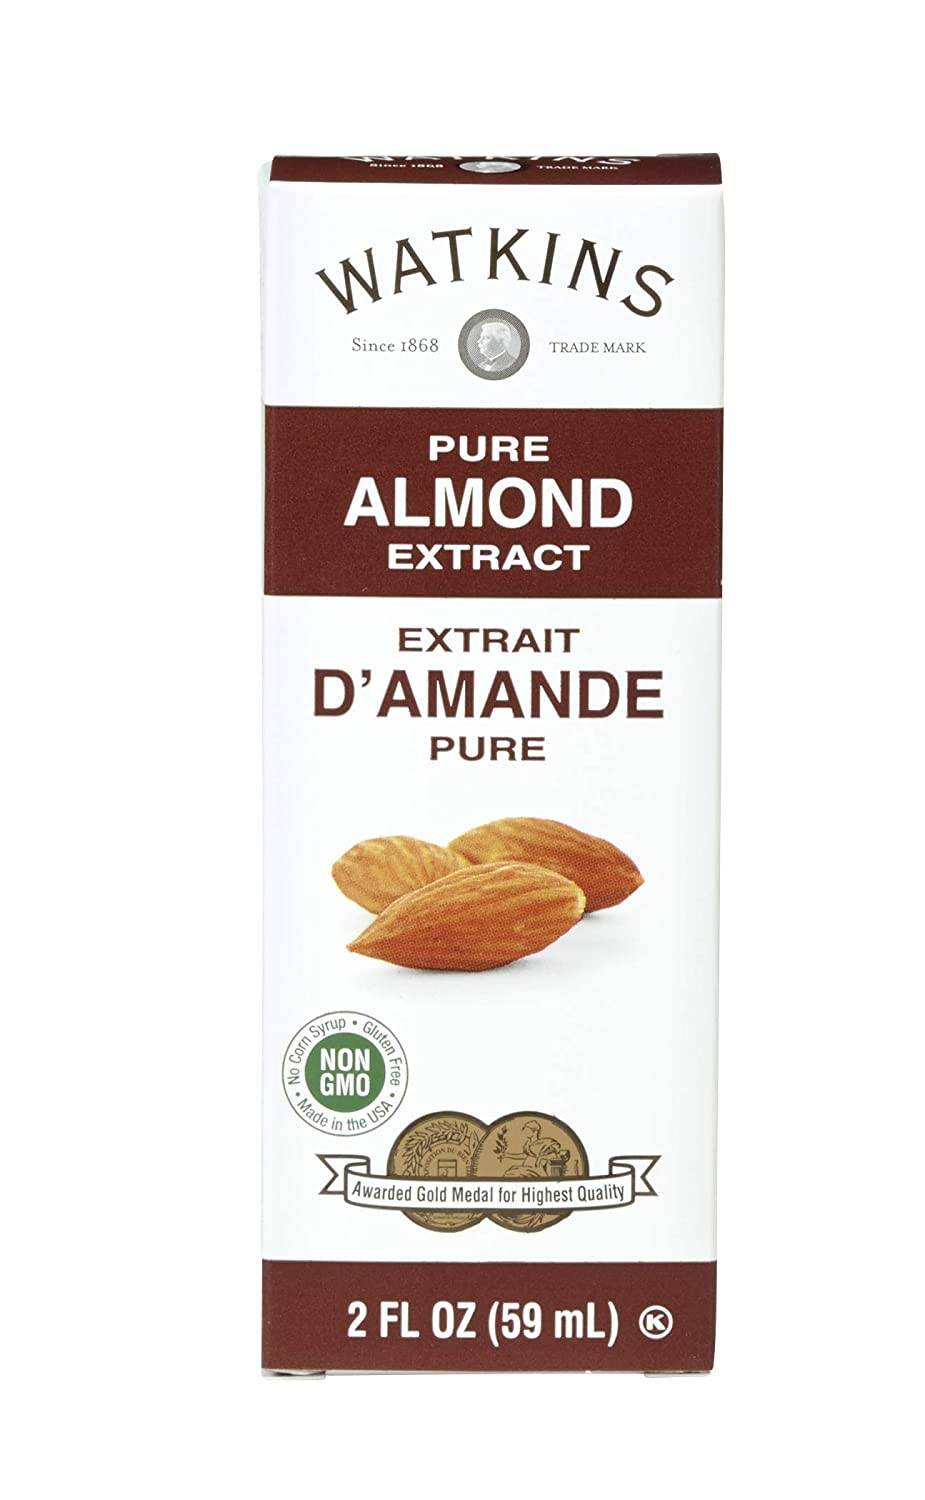 2oz. Watkins Pure Almond Extract